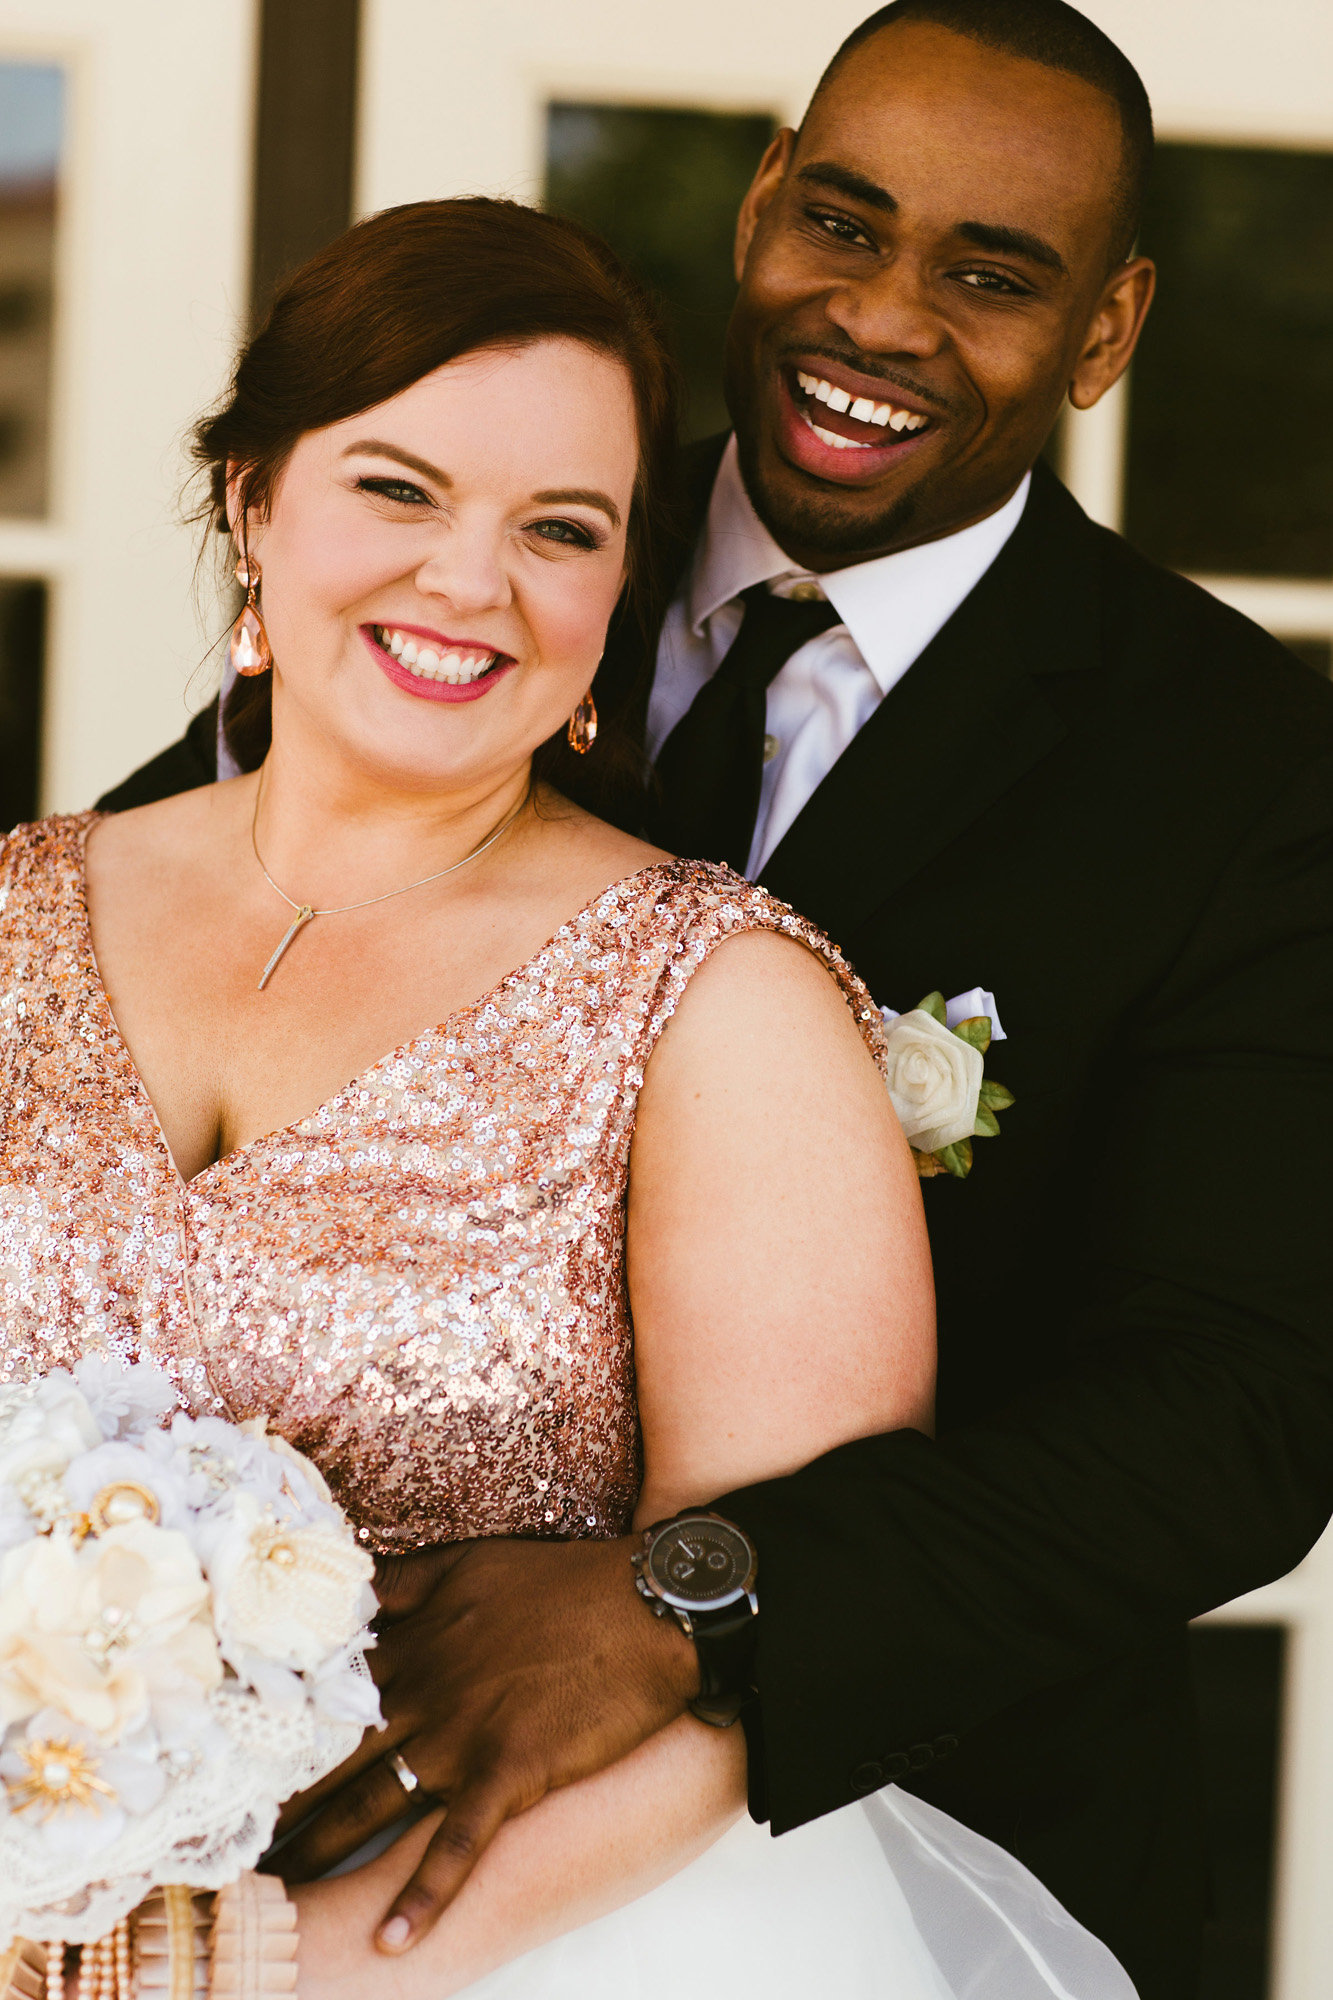 Tiffany-Charvis-Wedding-LR-Edits-406_1